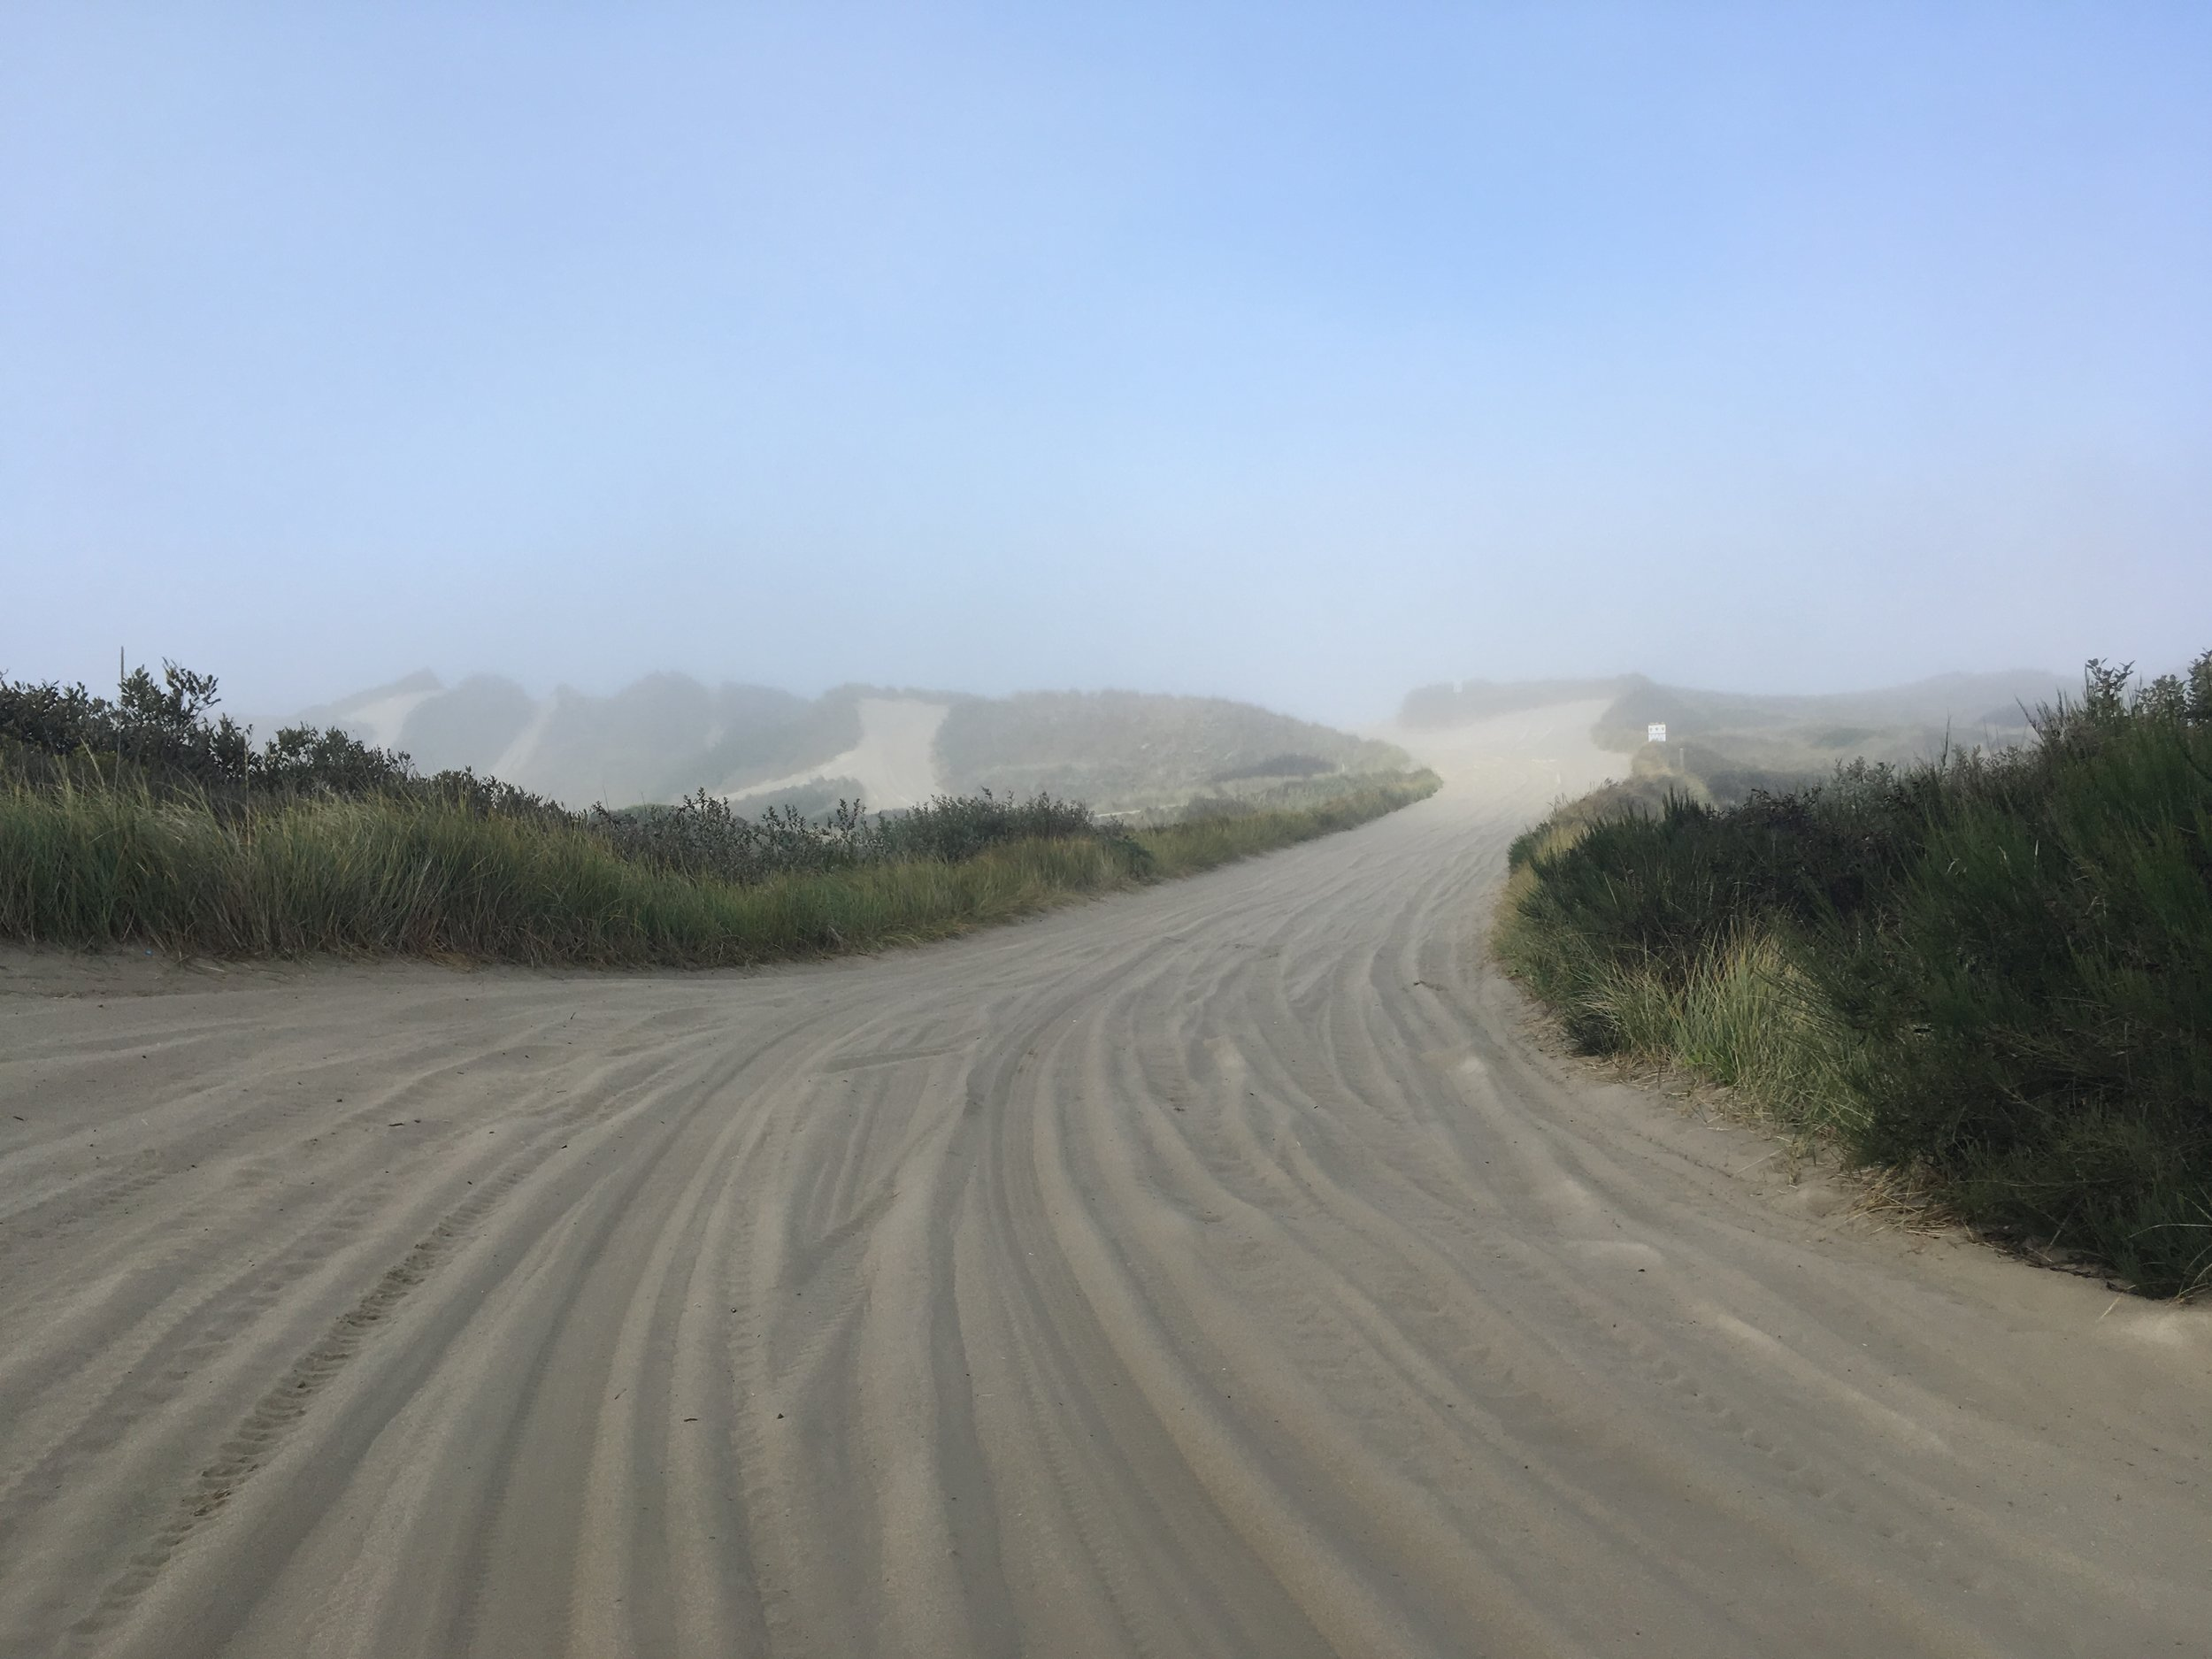 Heading into the dunes and fog!